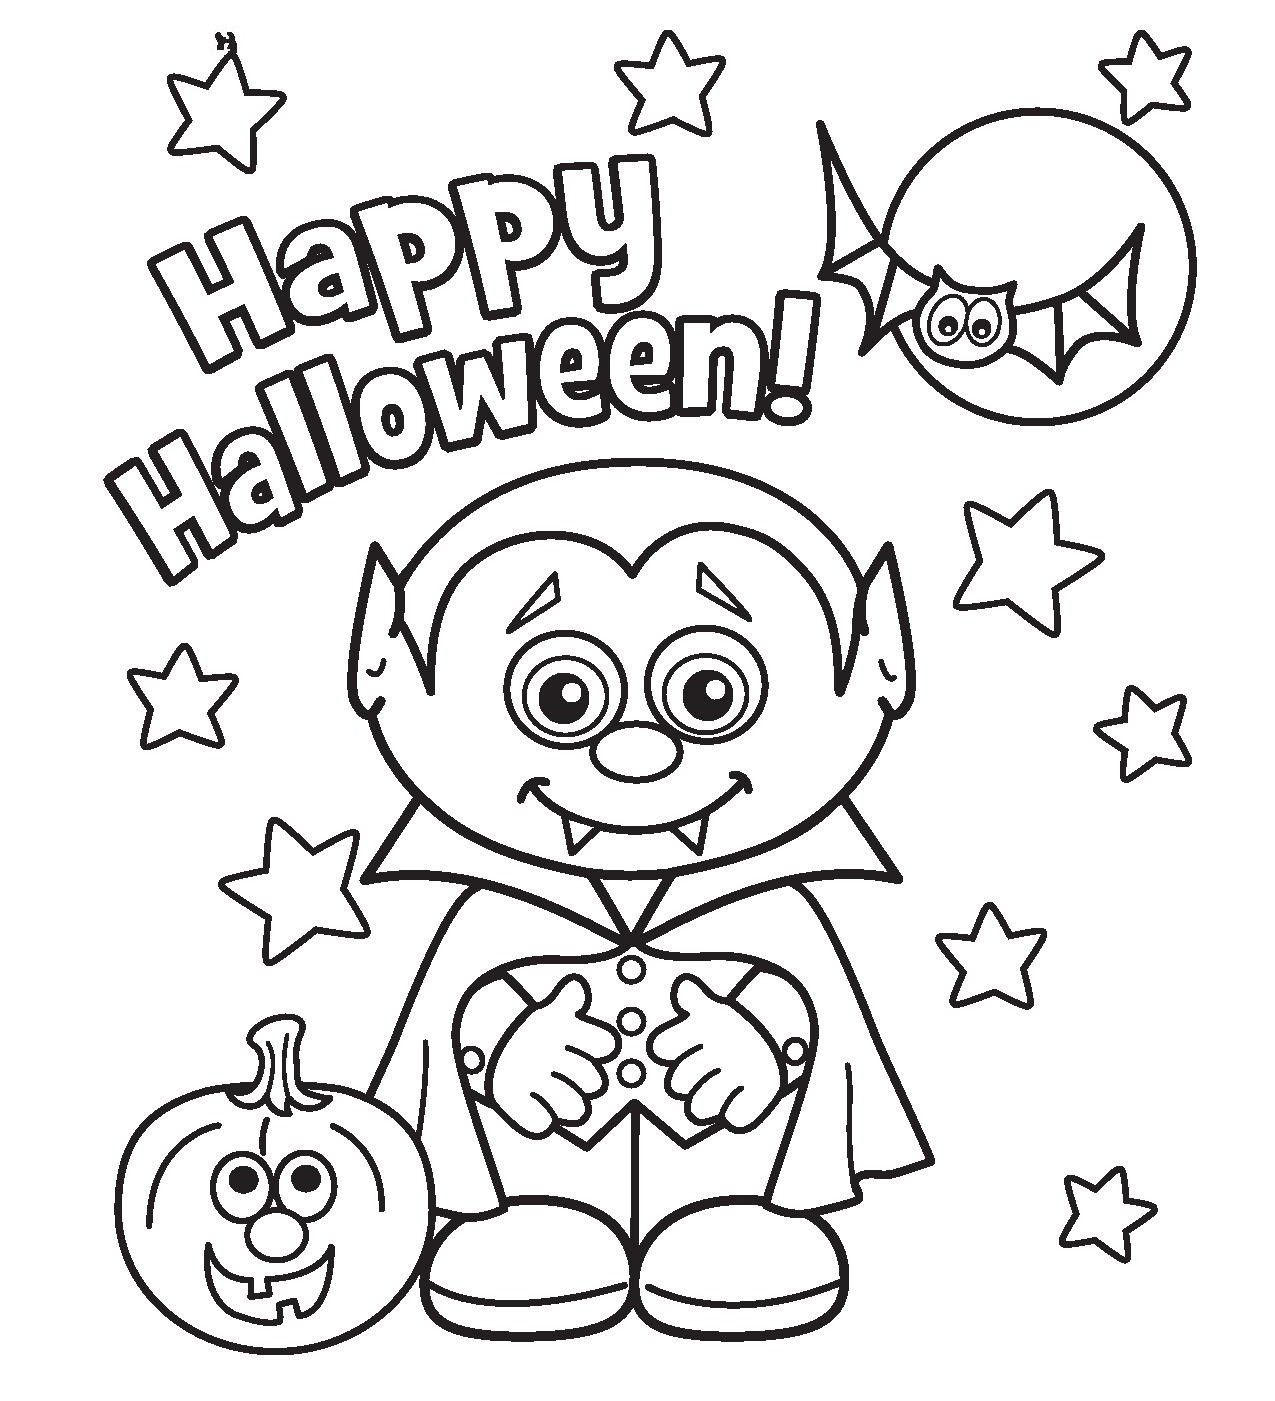 Childrens online colouring book - Little Vampire Printabel Halloween Coloring Pages Vampire Coloring Pages Halloween Coloring Pages Boys Coloring Pages Free Online Coloring Pages And